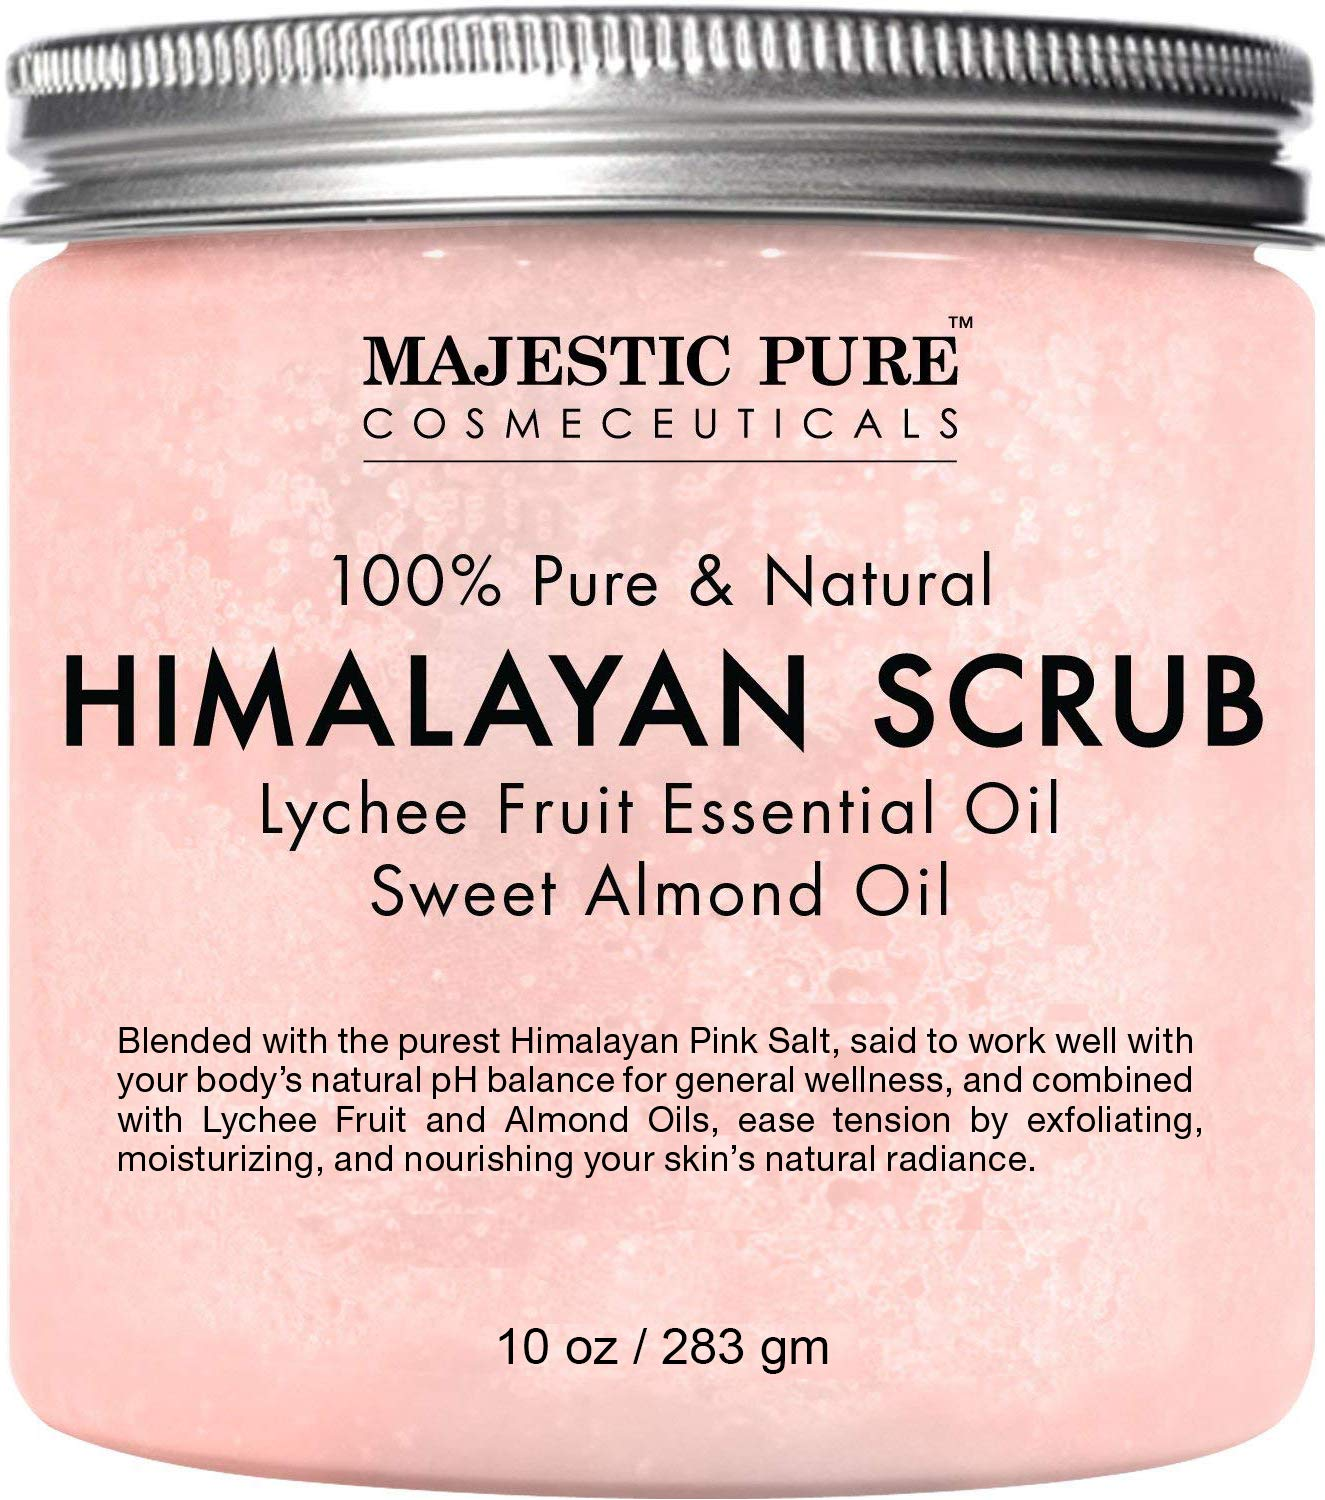 Majestic Pure Himalayan Salt Body Scrub with Lychee Essential Oil, All Natural Scrub to Exfoliate & Moisturize Skin, 10 oz